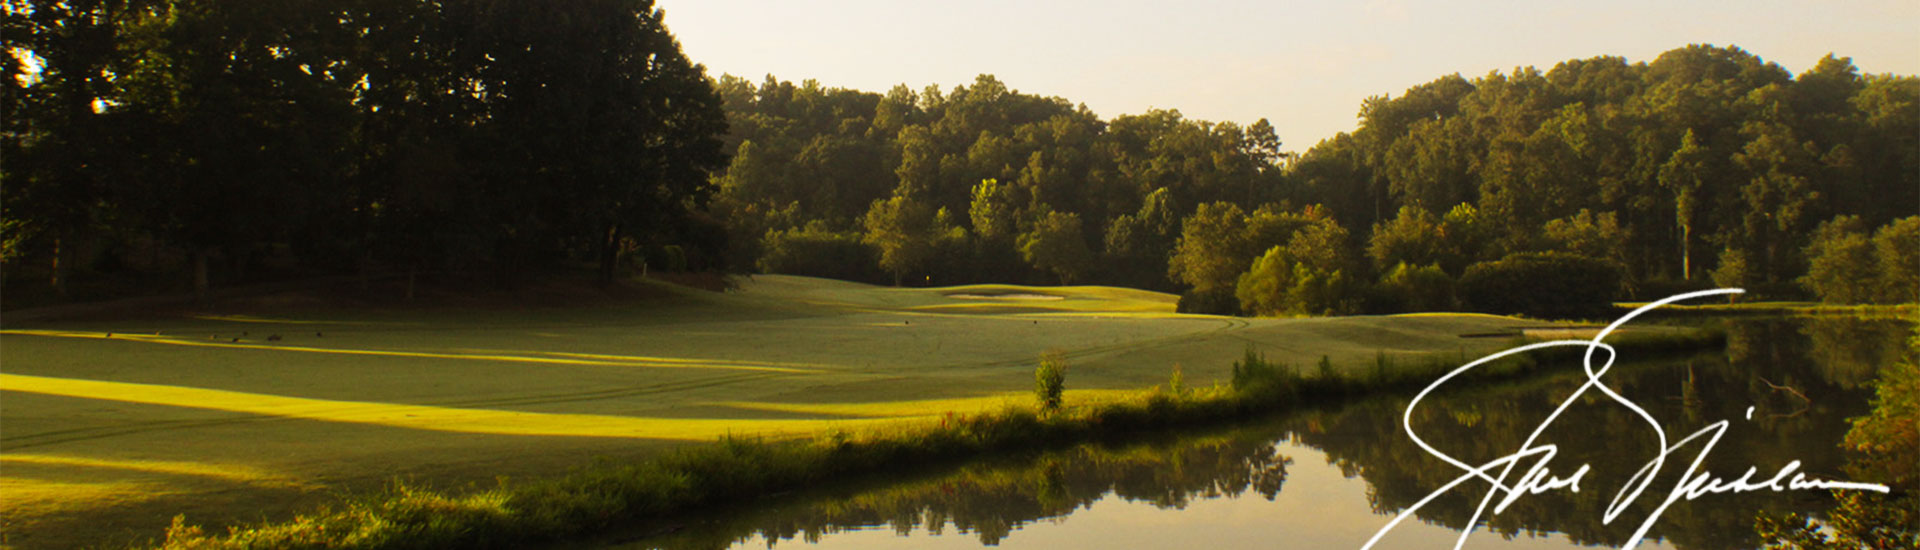 Salem Glen Golf and Country Club - Clemmons NC